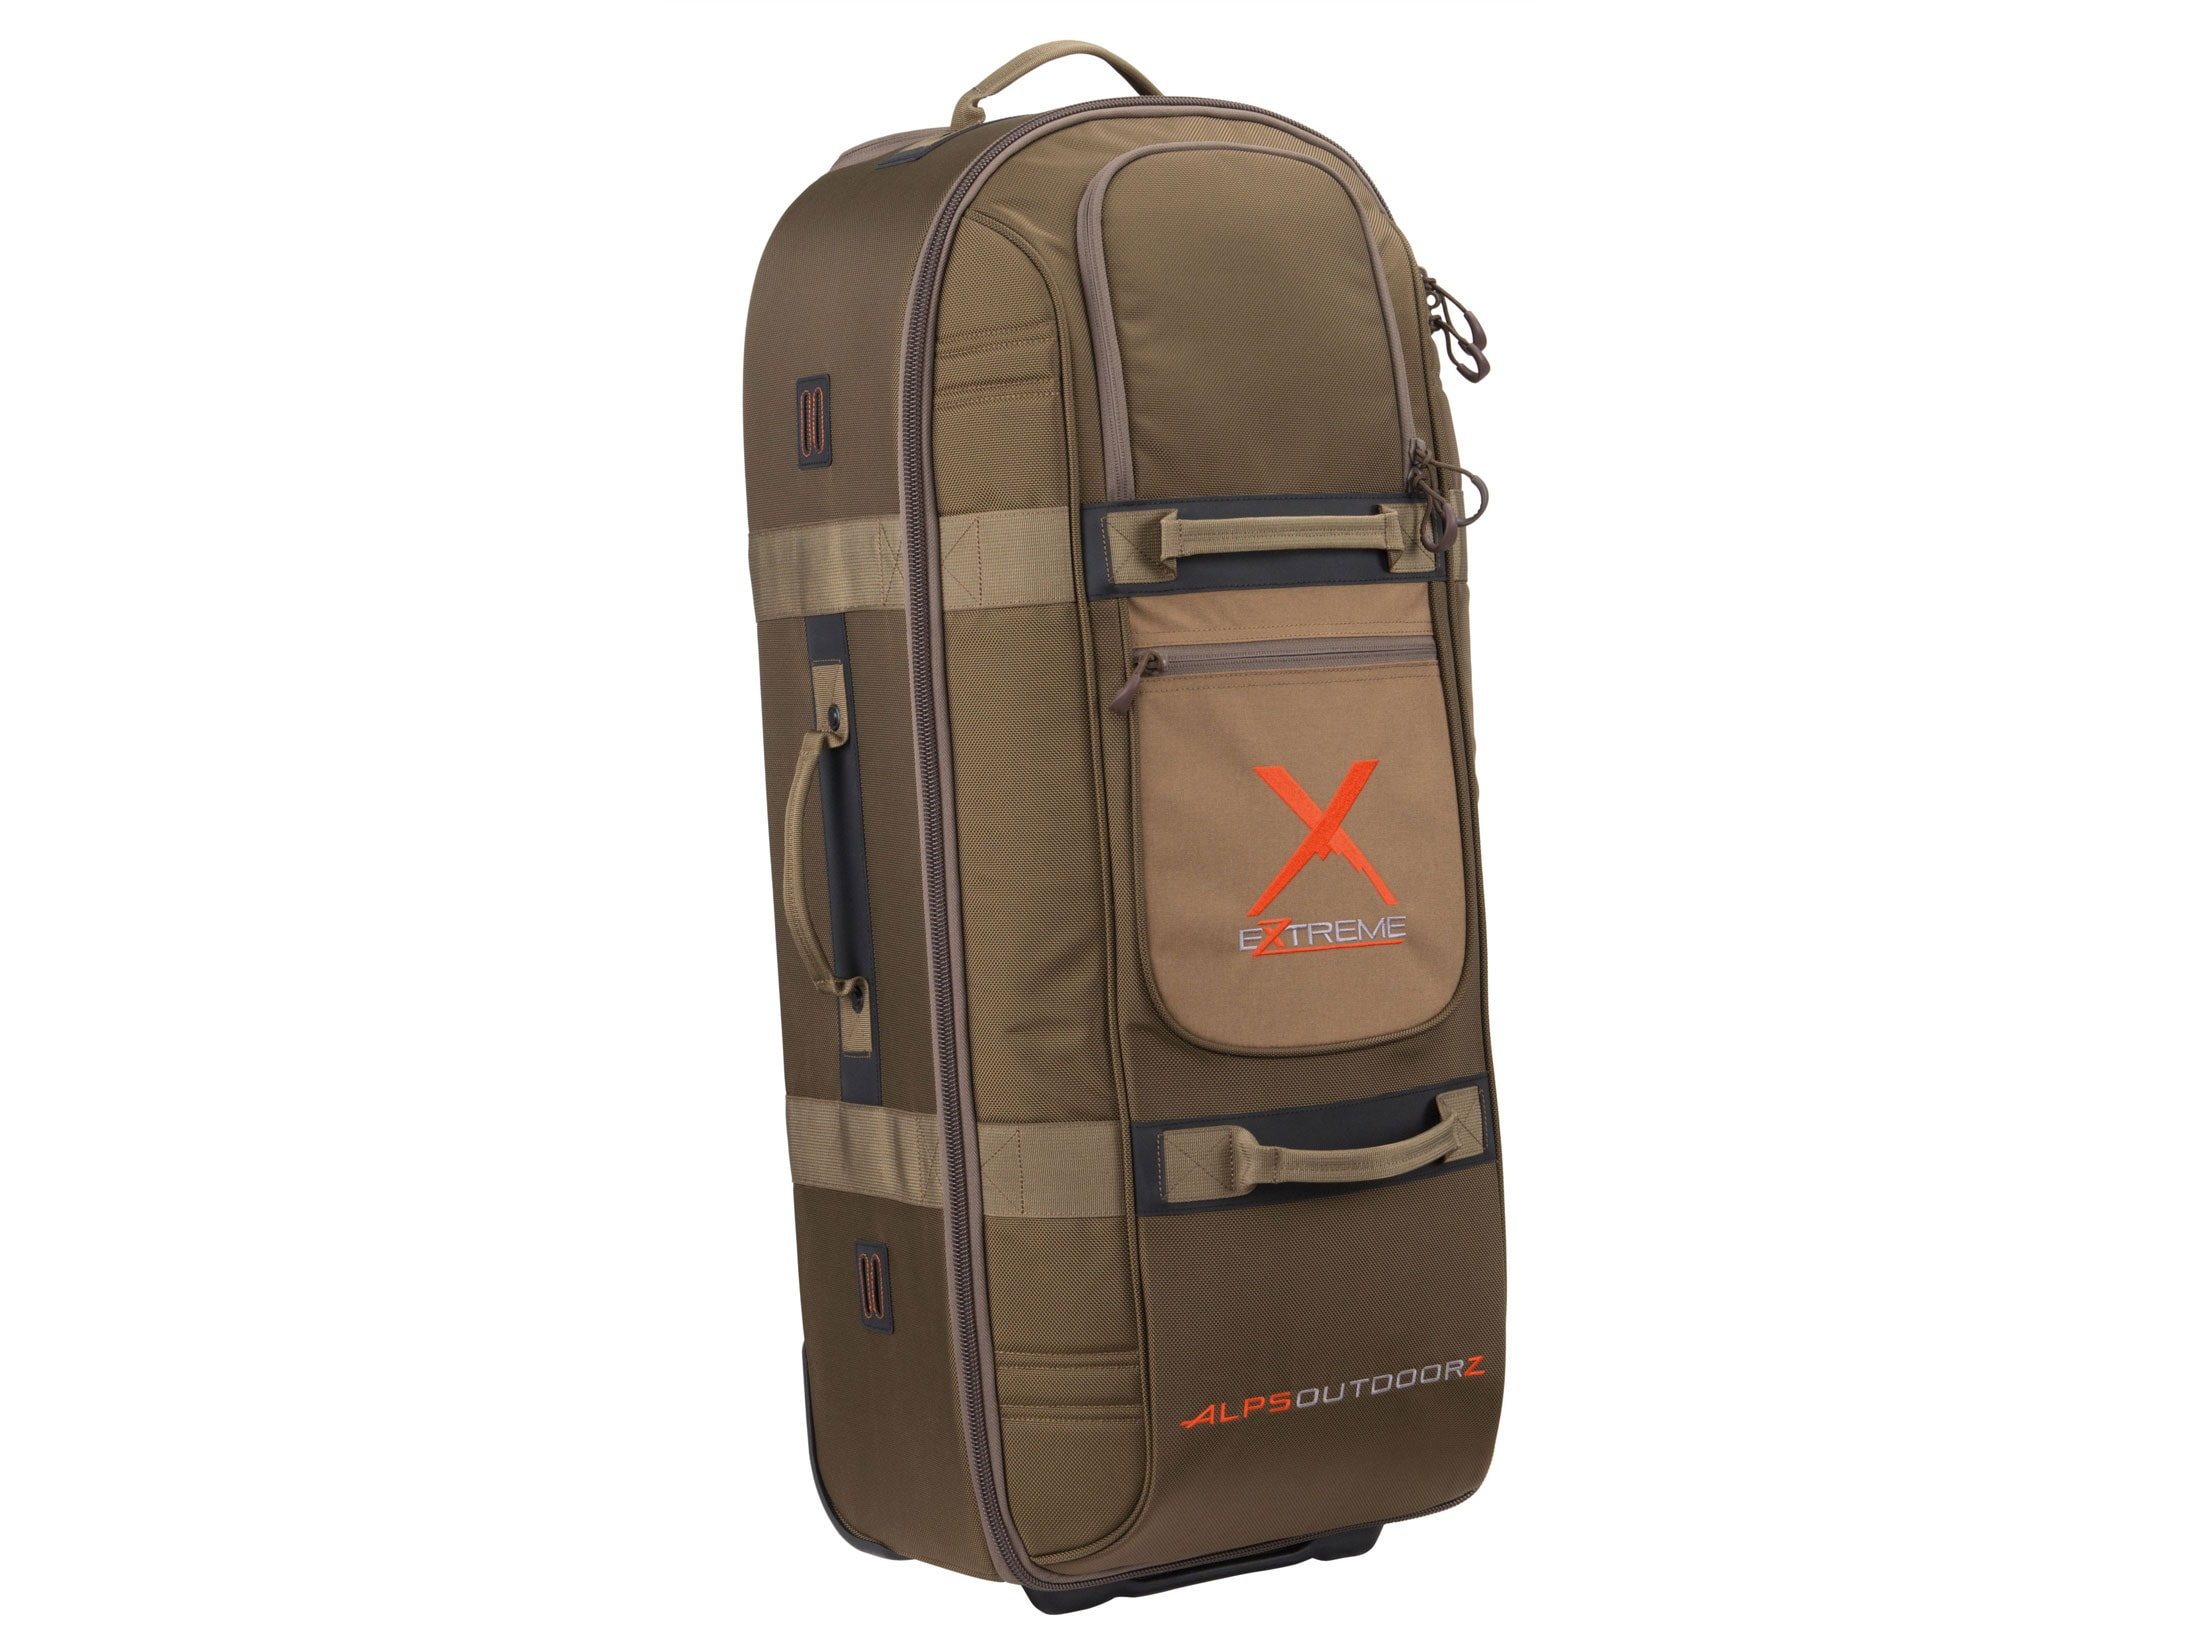 ALPS Outdoorz Voyager X Suitcase Nylon Coyote